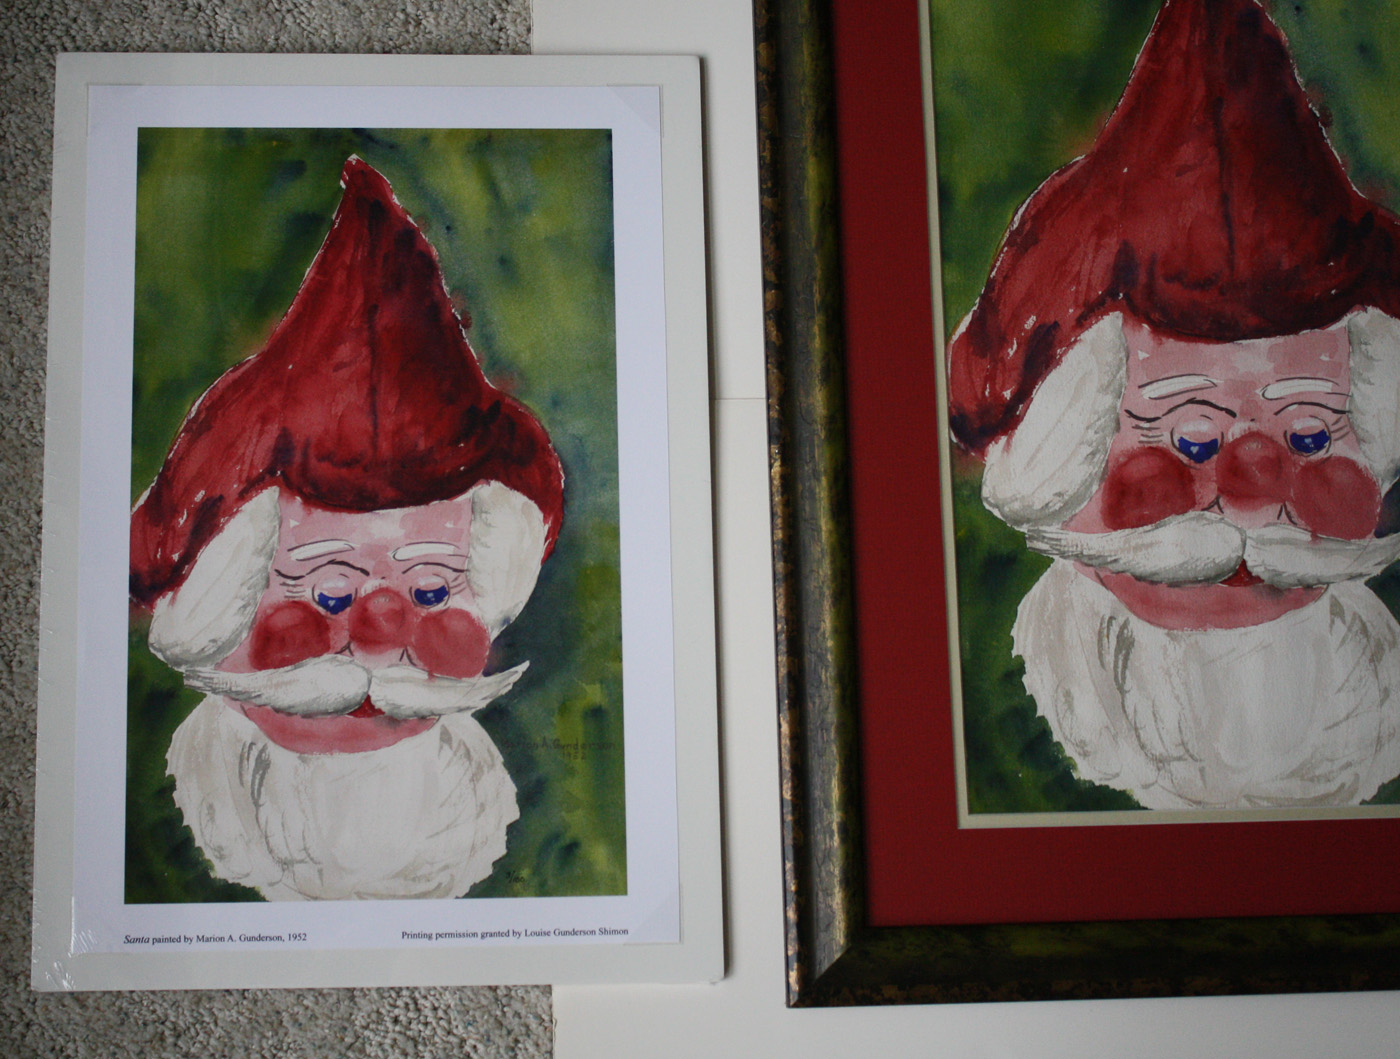 """Left: Santa limited edition size 10"""" W x 16.1"""" H print $__..  Smaller prints size 6.5"""" W x 10.5"""" H are also available, $__.  Right:  Santa original. Click photo to enlarge."""